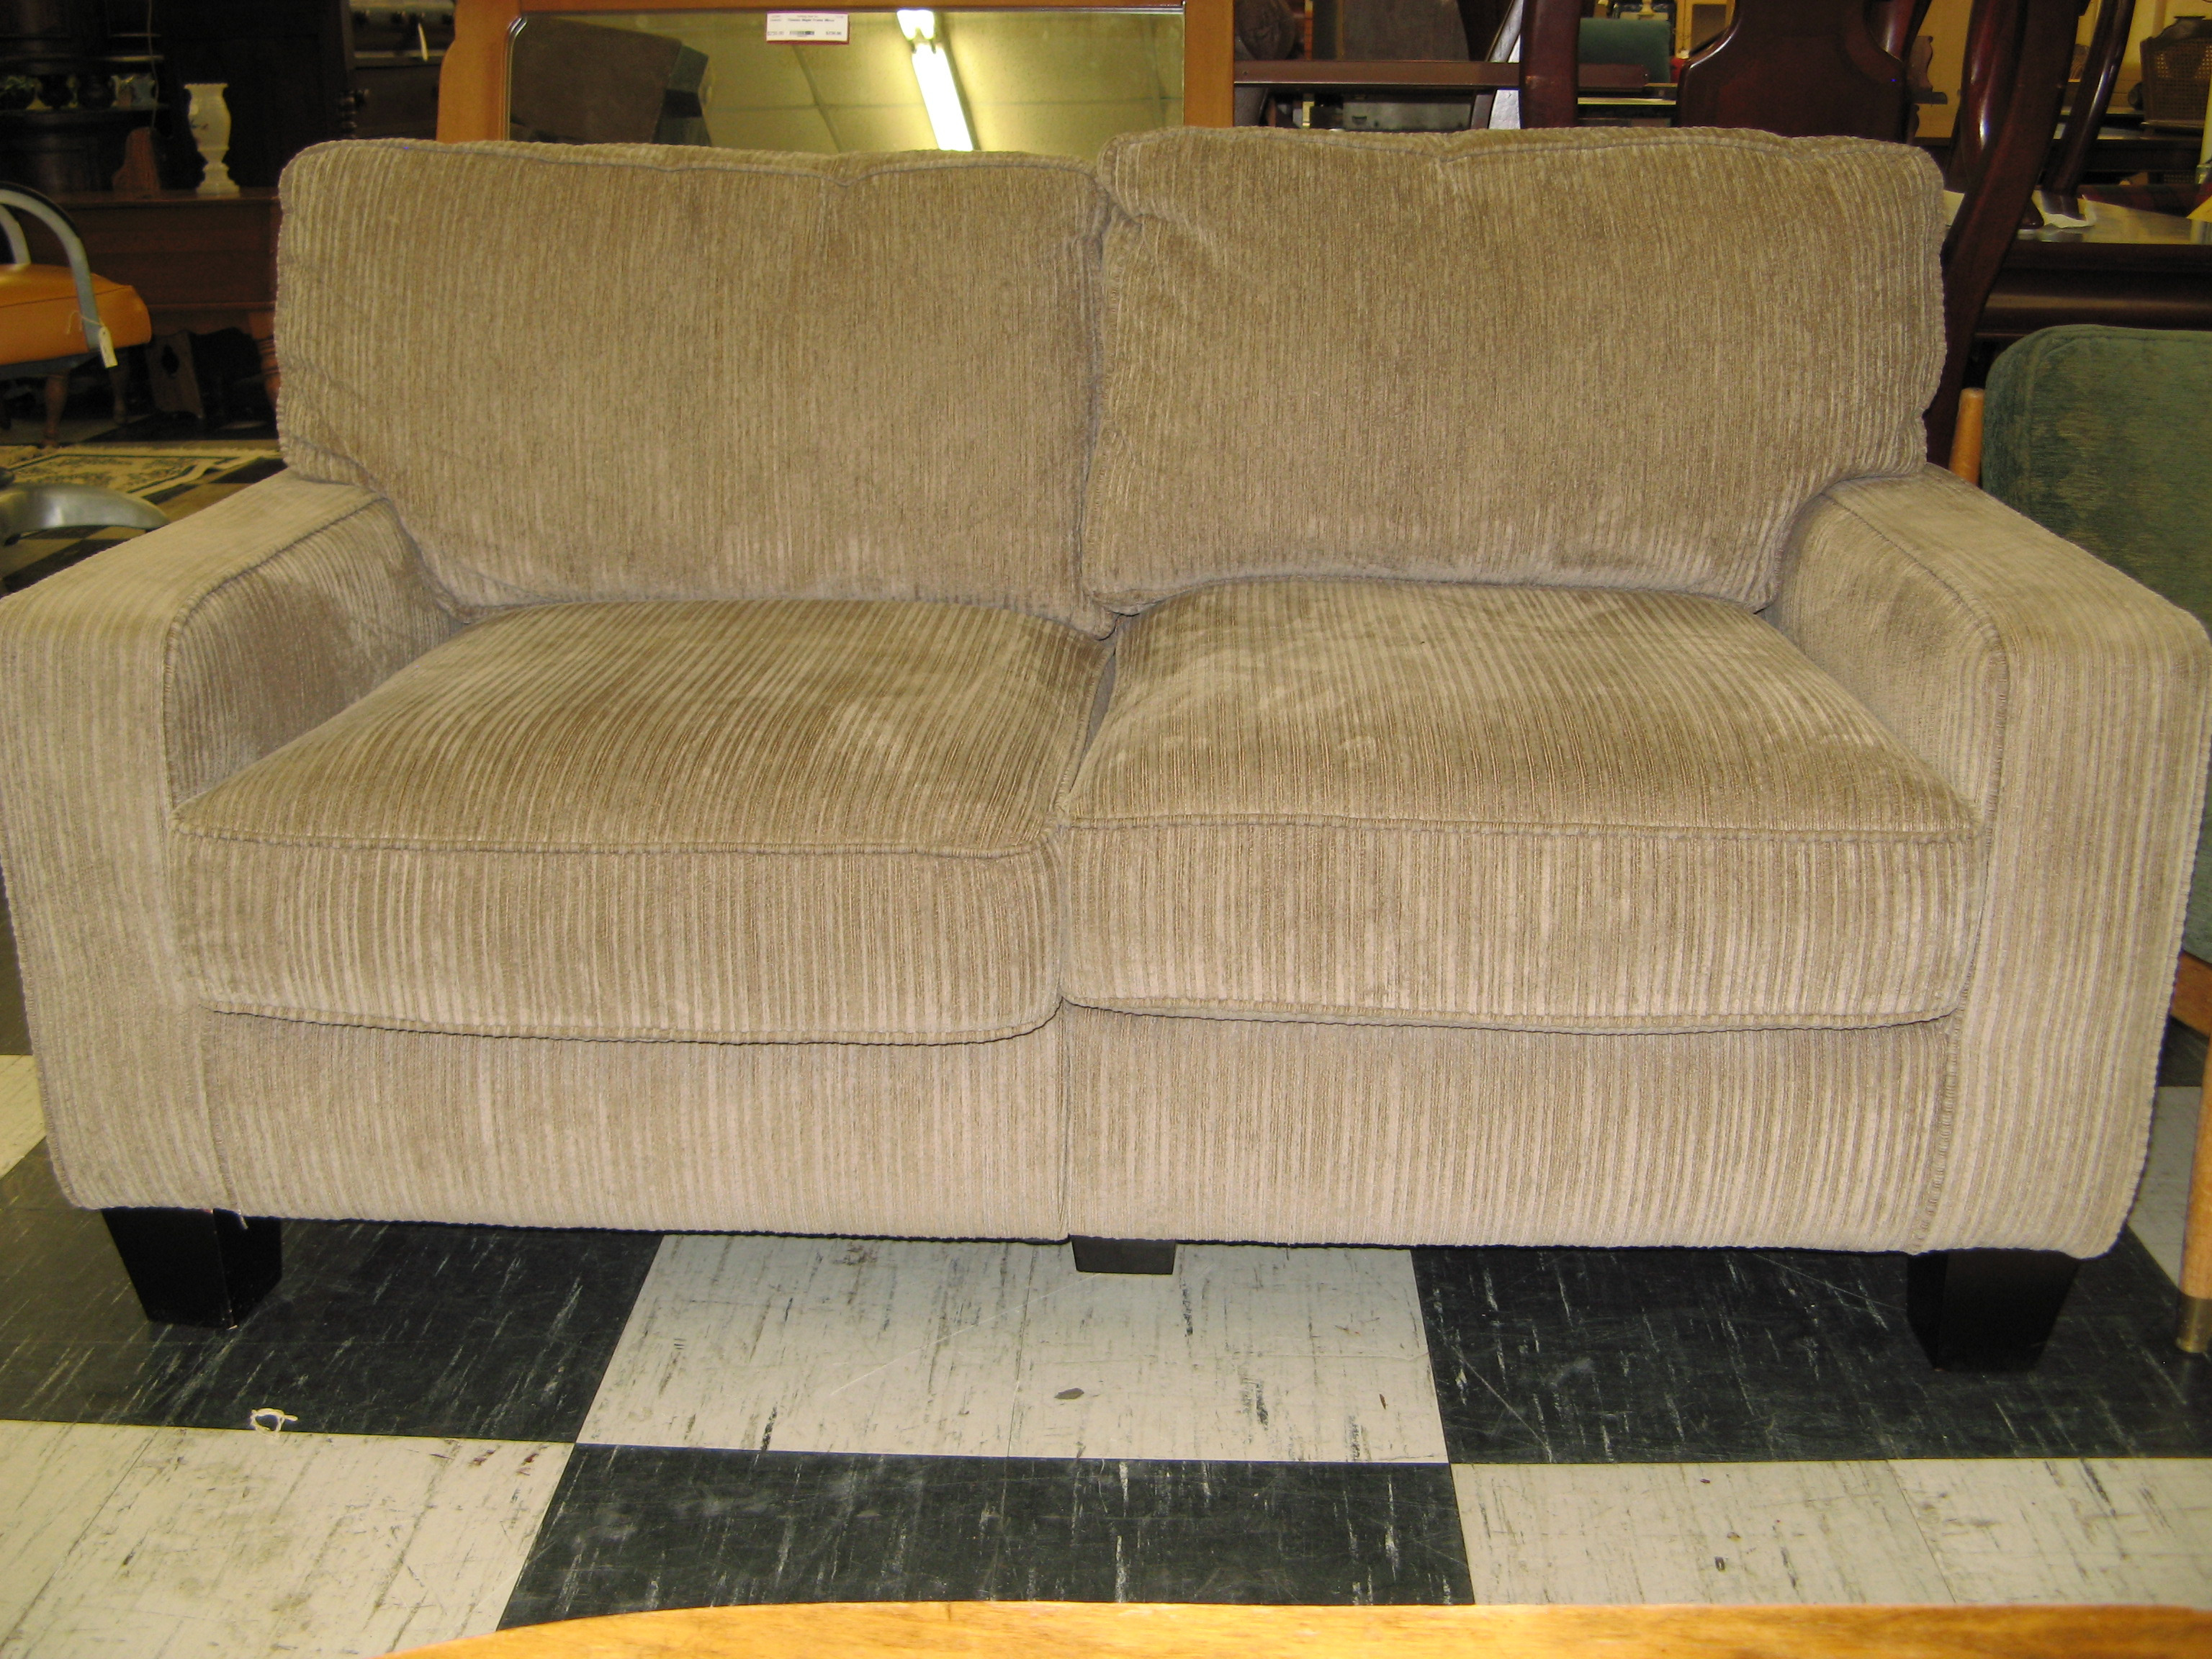 Warm Gray/Taupe Loveseat with Wide-Ribbed Corduroy Upholstery